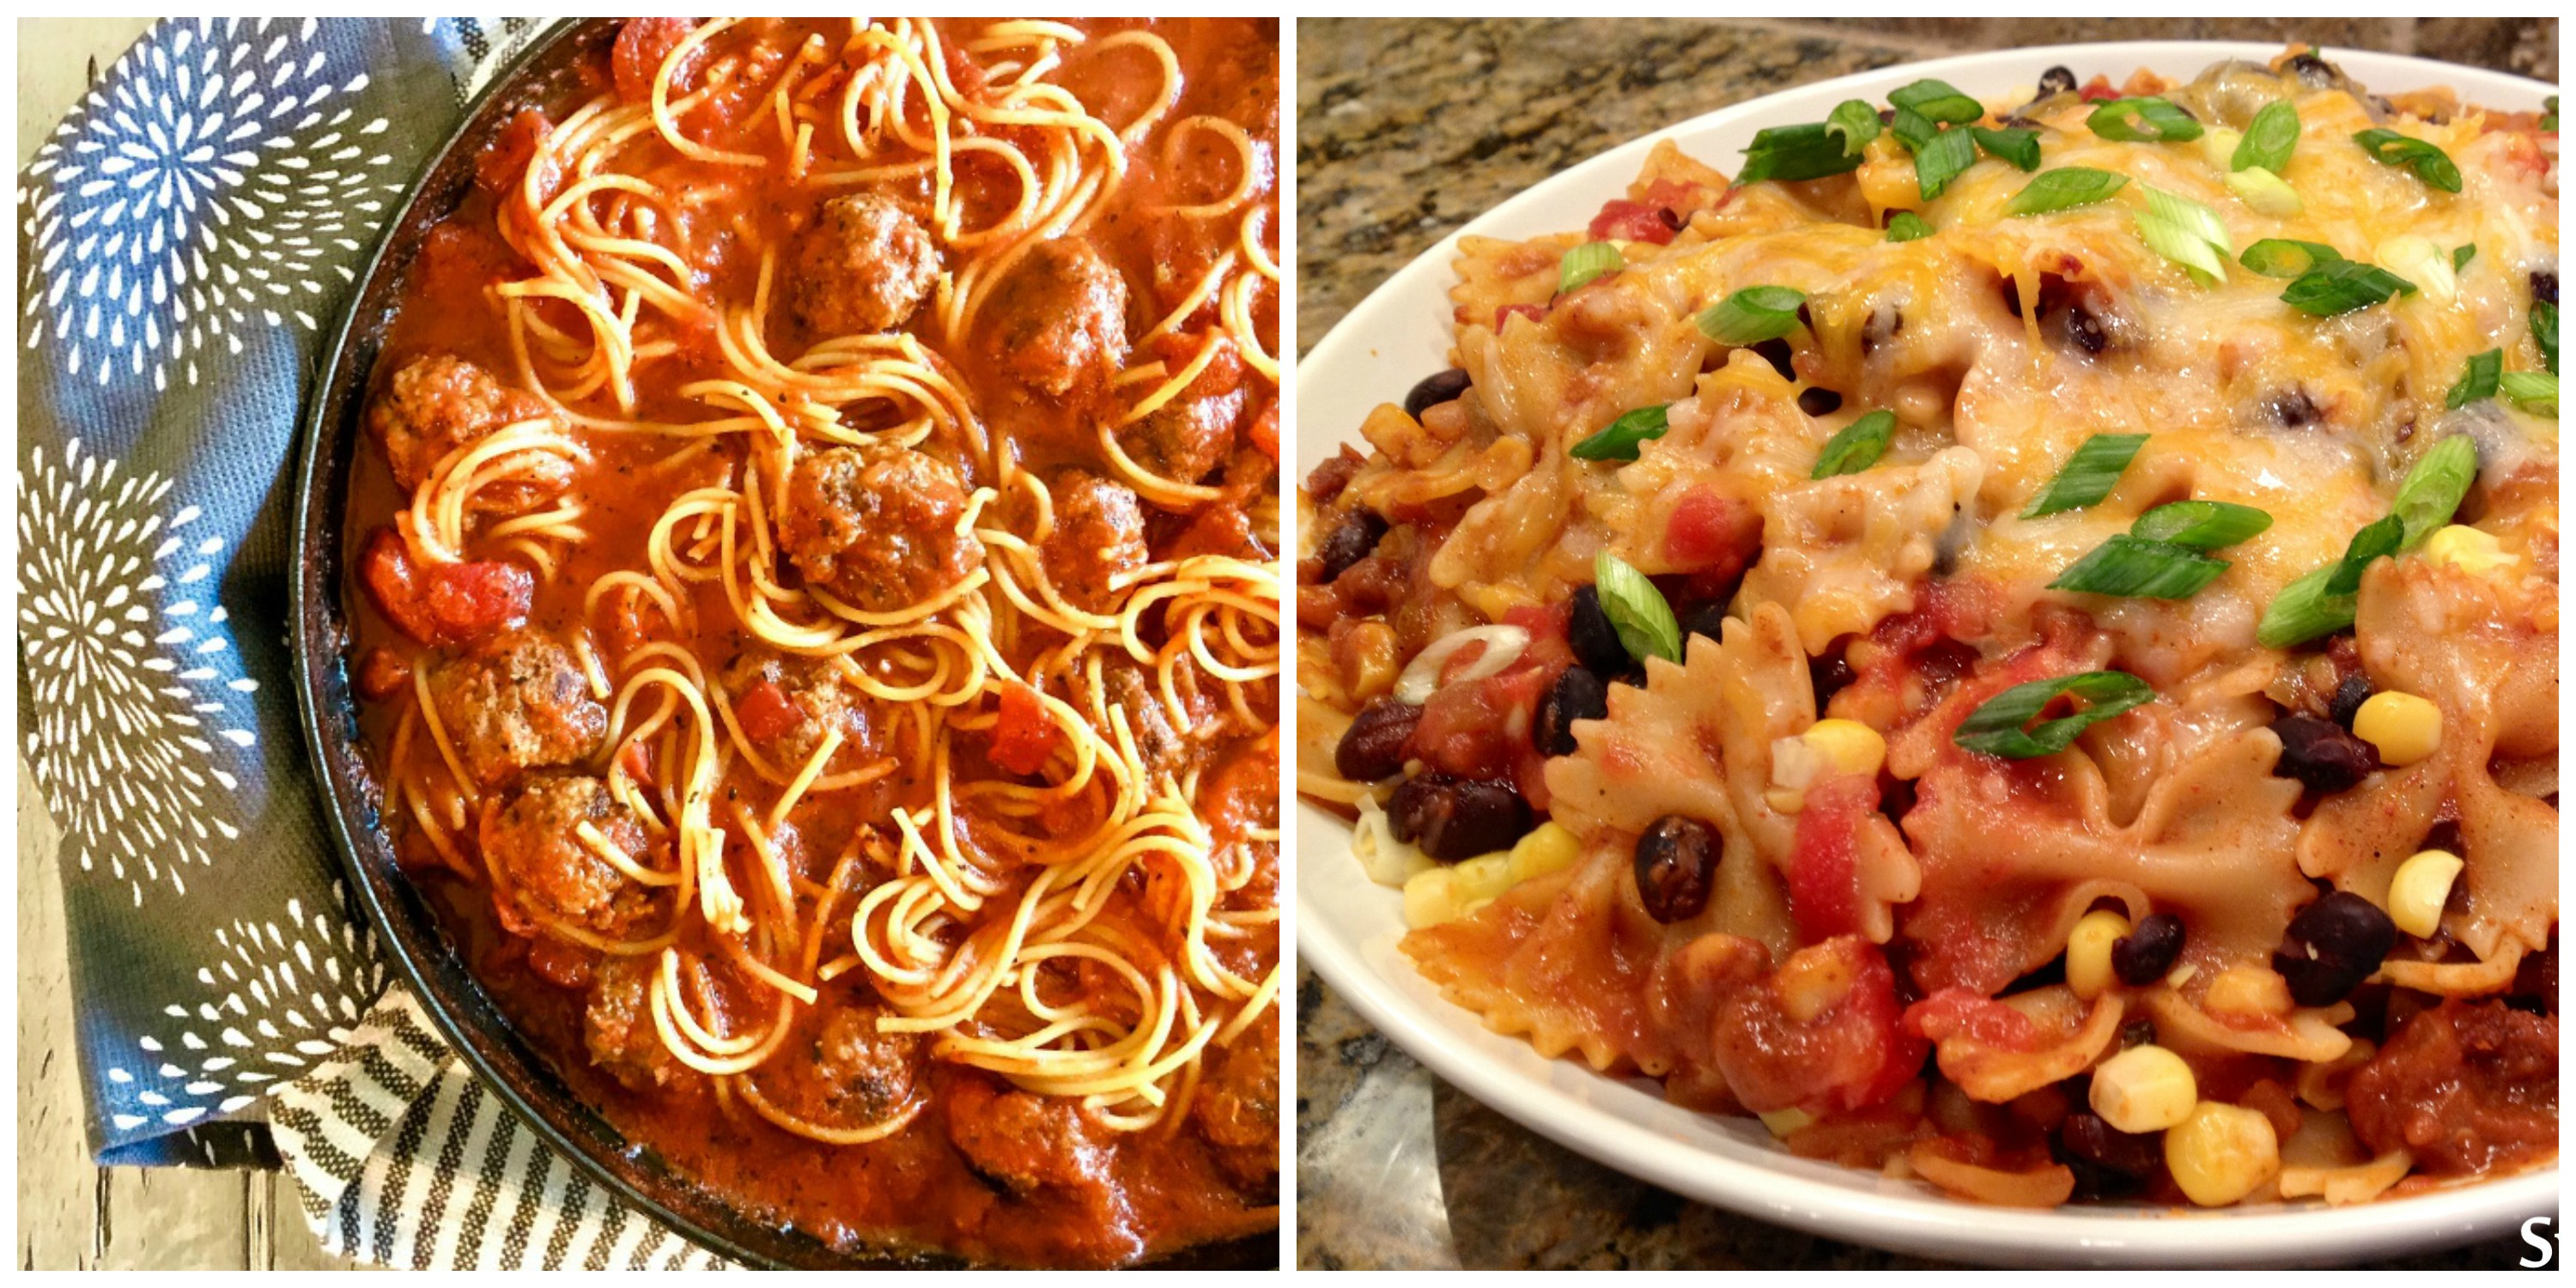 Spaghetti and meatballs and Mexicali Pasta